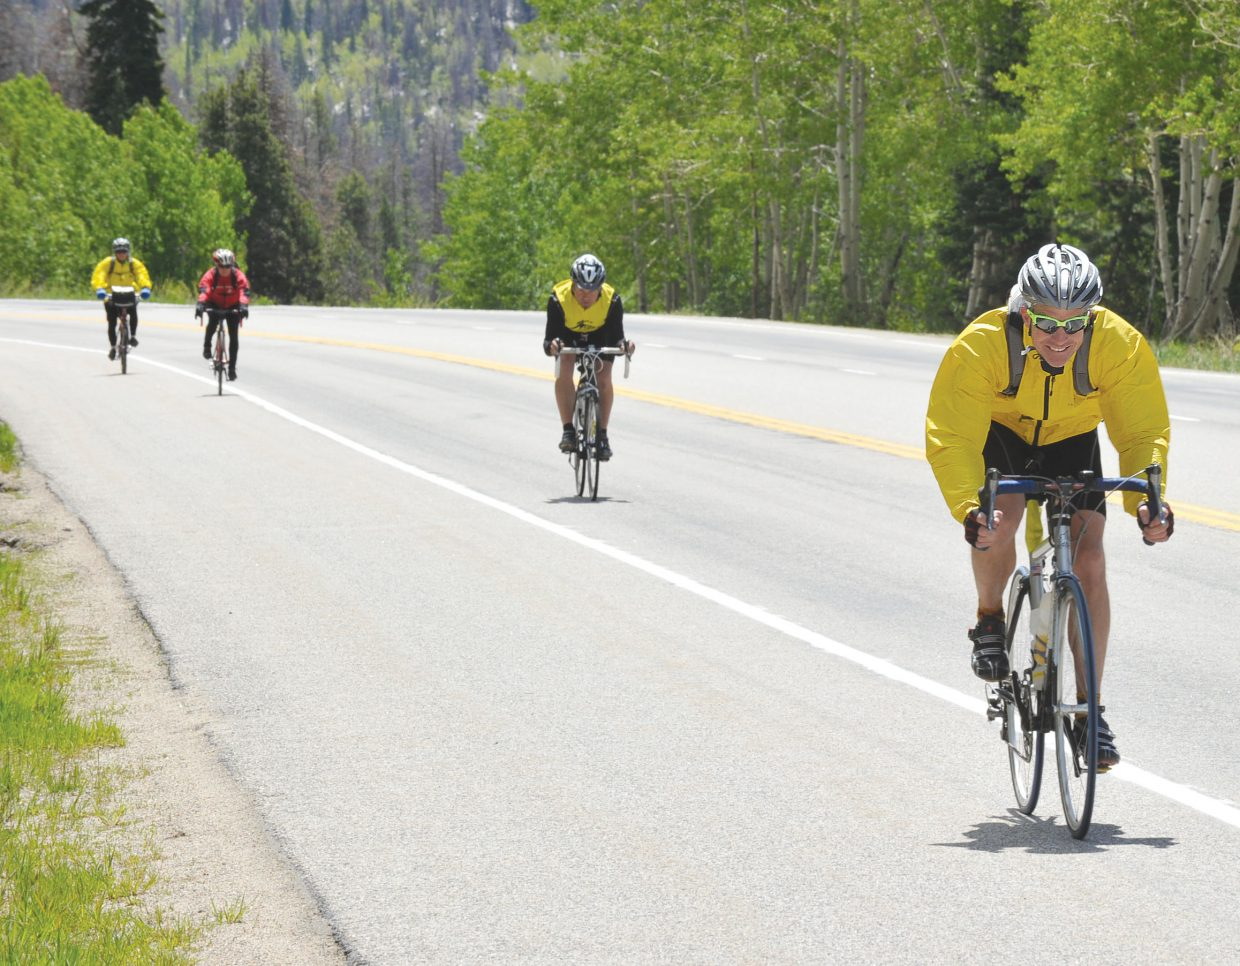 Cyclists roll down Rabbit Ears Pass on U.S. Highway 40 during the Bike Tour of Colorado on Tuesday afternoon. The cyclists in the tour made the 80-mile journey from Granby over Rabbit Ears Pass and into Steamboat Springs on Tuesday. On Wednesday they will head to Glenwood Springs.